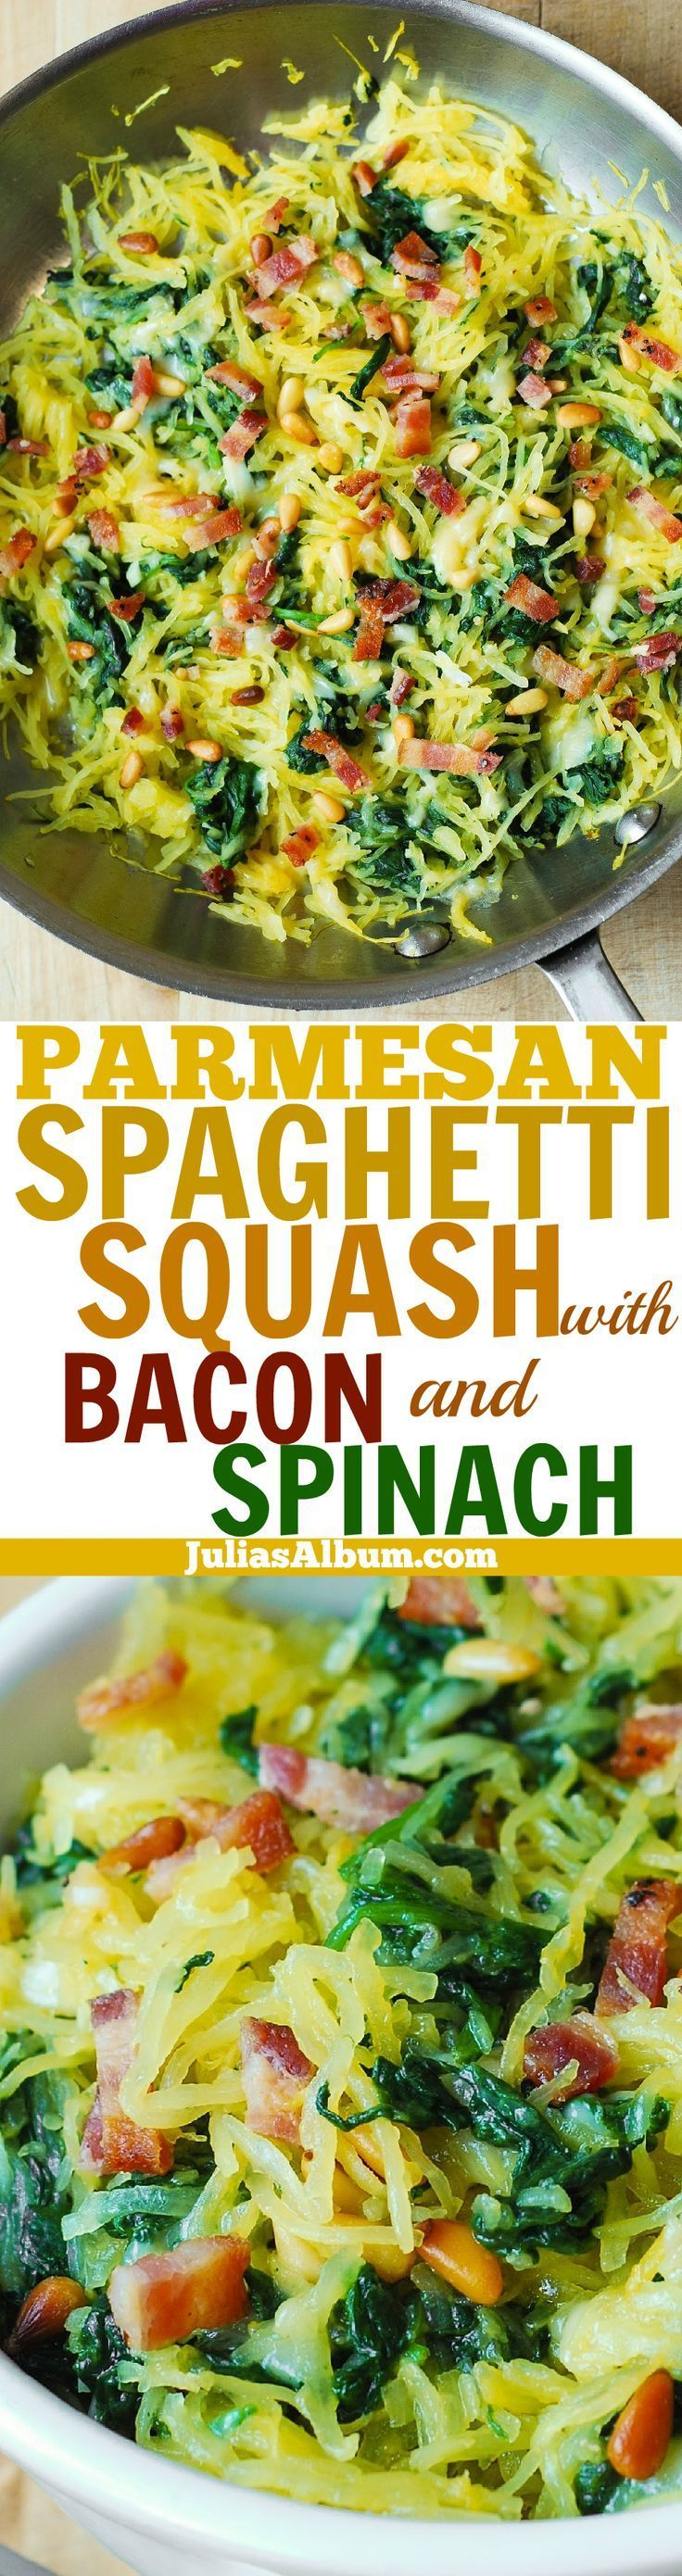 Garlic Spaghetti Squash, Spinach, and Bacon, + melted Parmesan cheese and toasted pine nuts. Delicious, healthy, gluten free! (Ketogenic Recipes Spaghetti Squash)